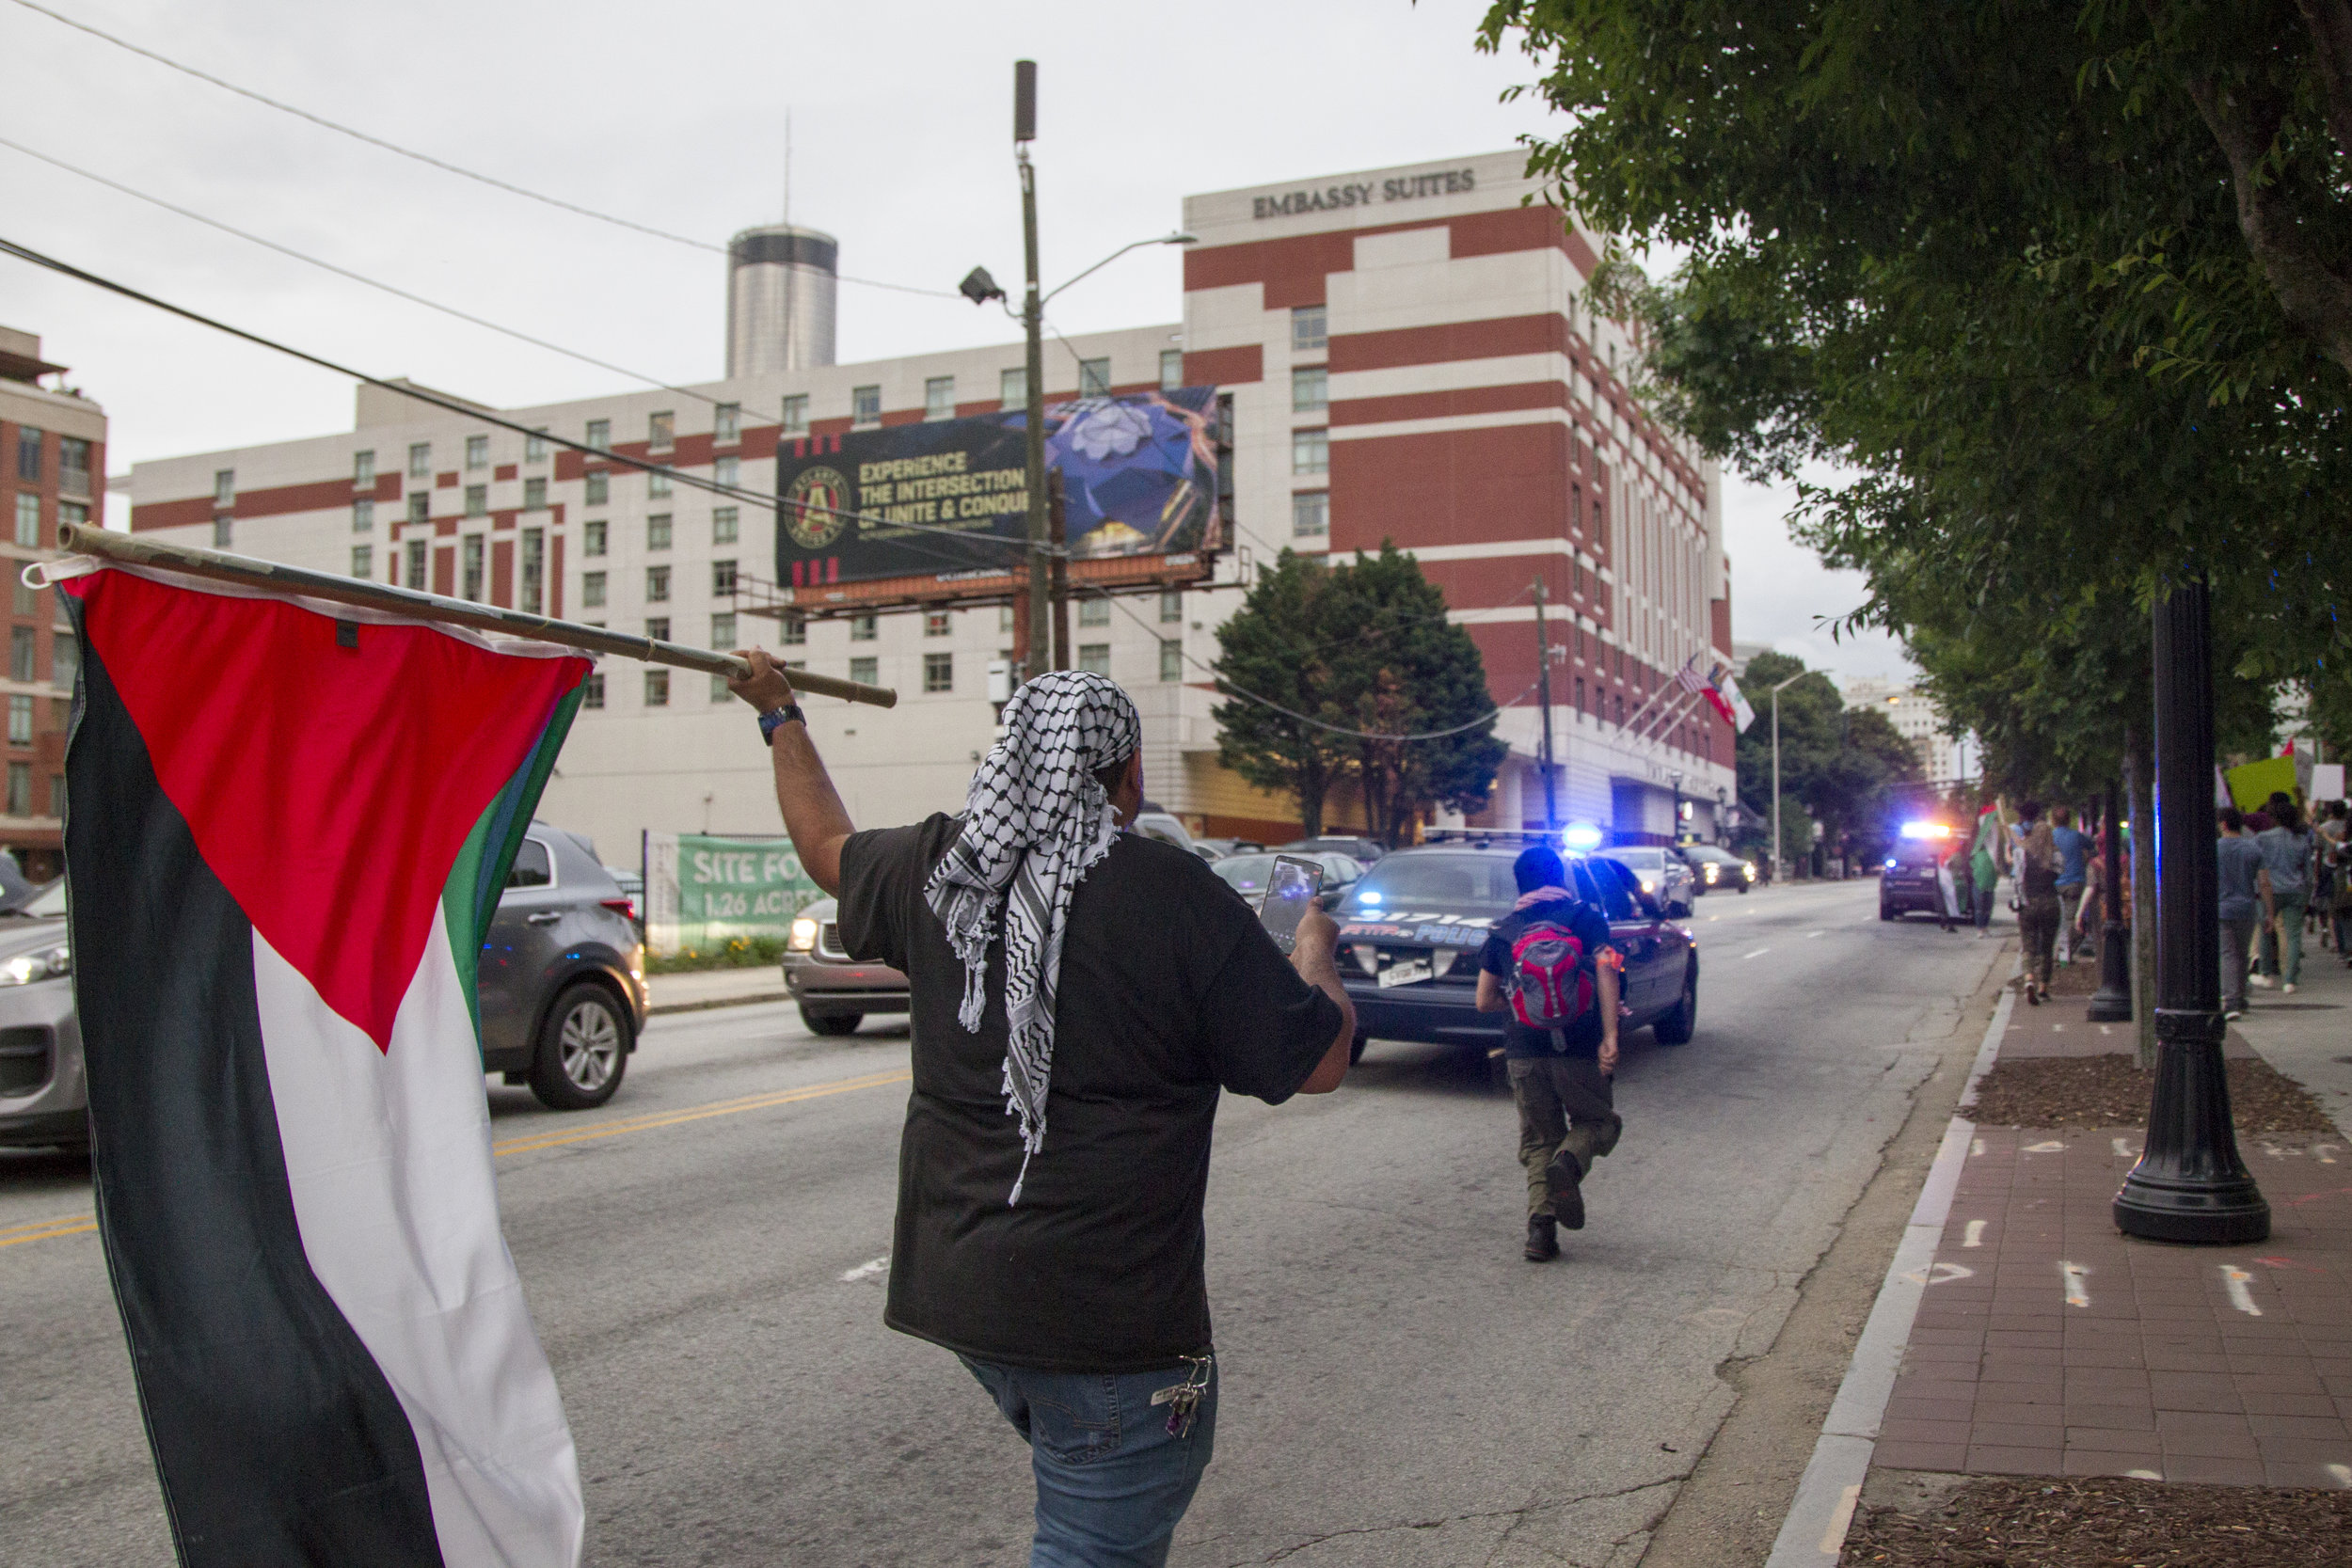 Protestors take to the streets at the emergency protest for the violence in Gaza in Downtown Atlanta, Georgia, on Tuesday, May 15, 2018.